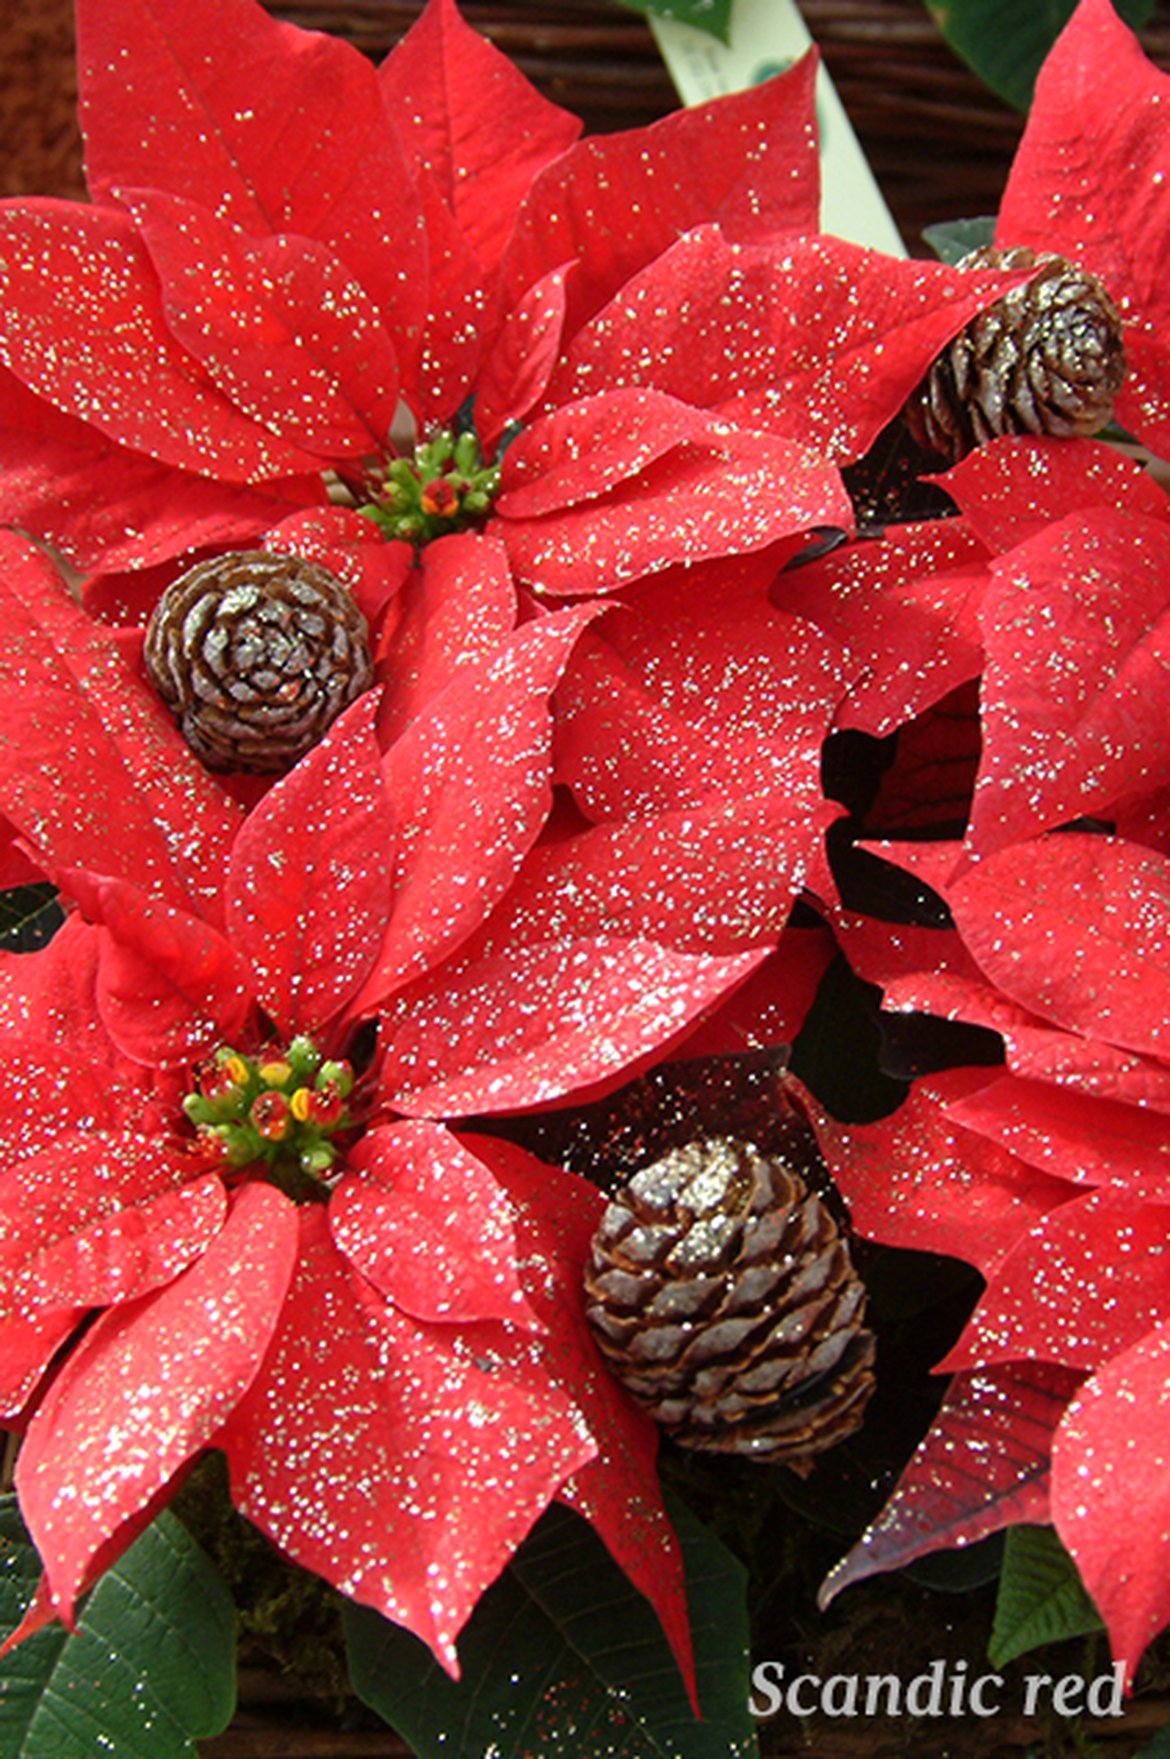 Poinsettia - Scandic Red